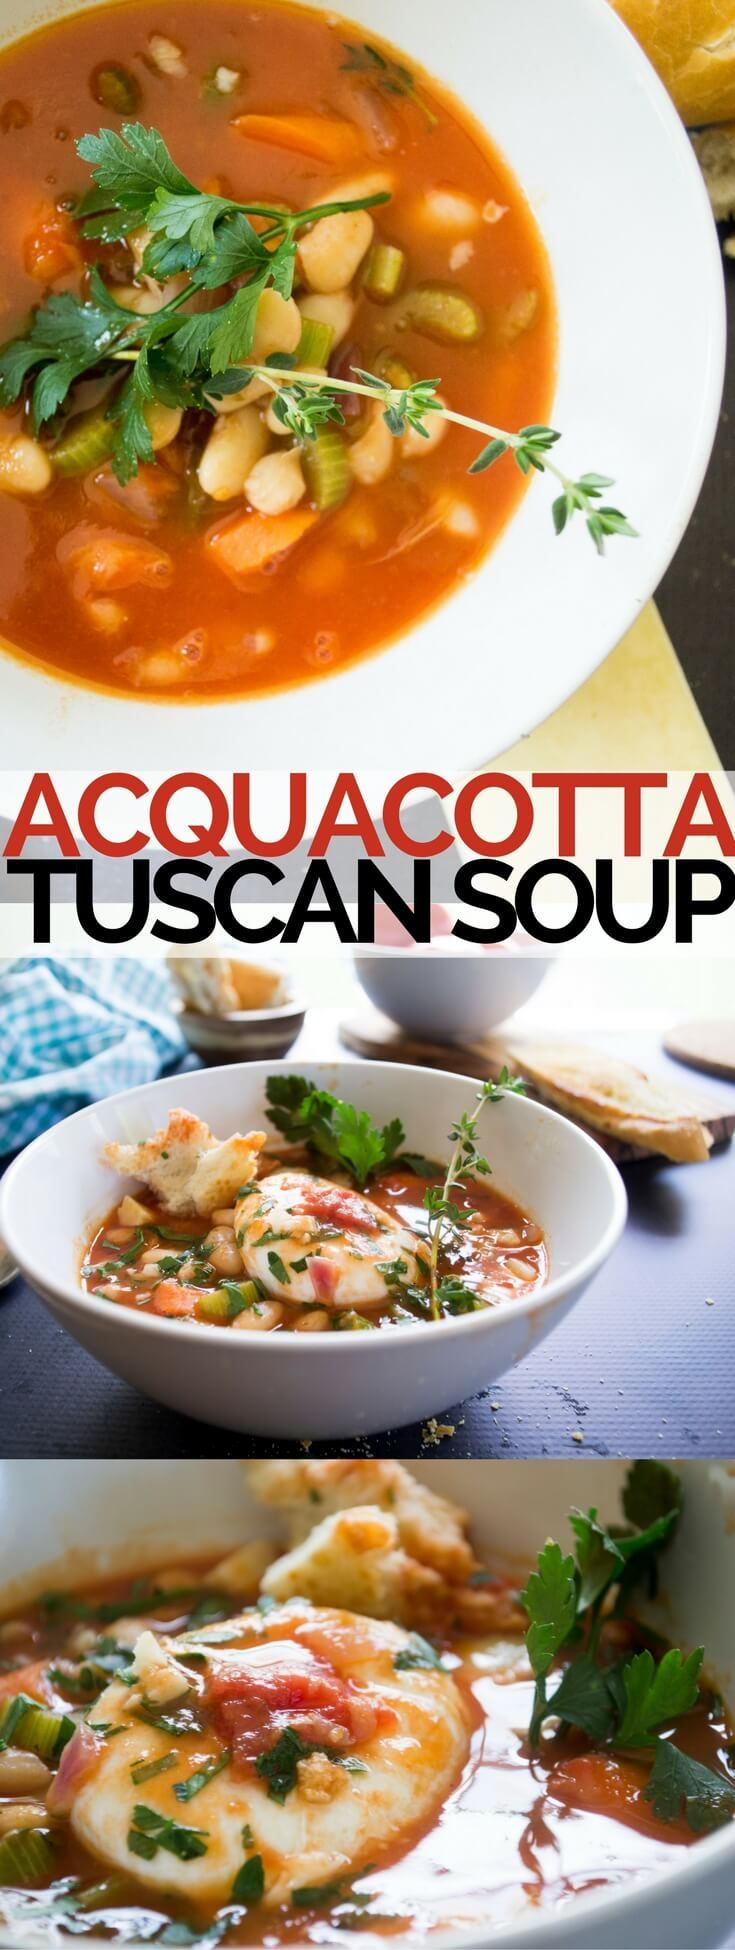 Acquacotta - Traditional Tuscan Soup